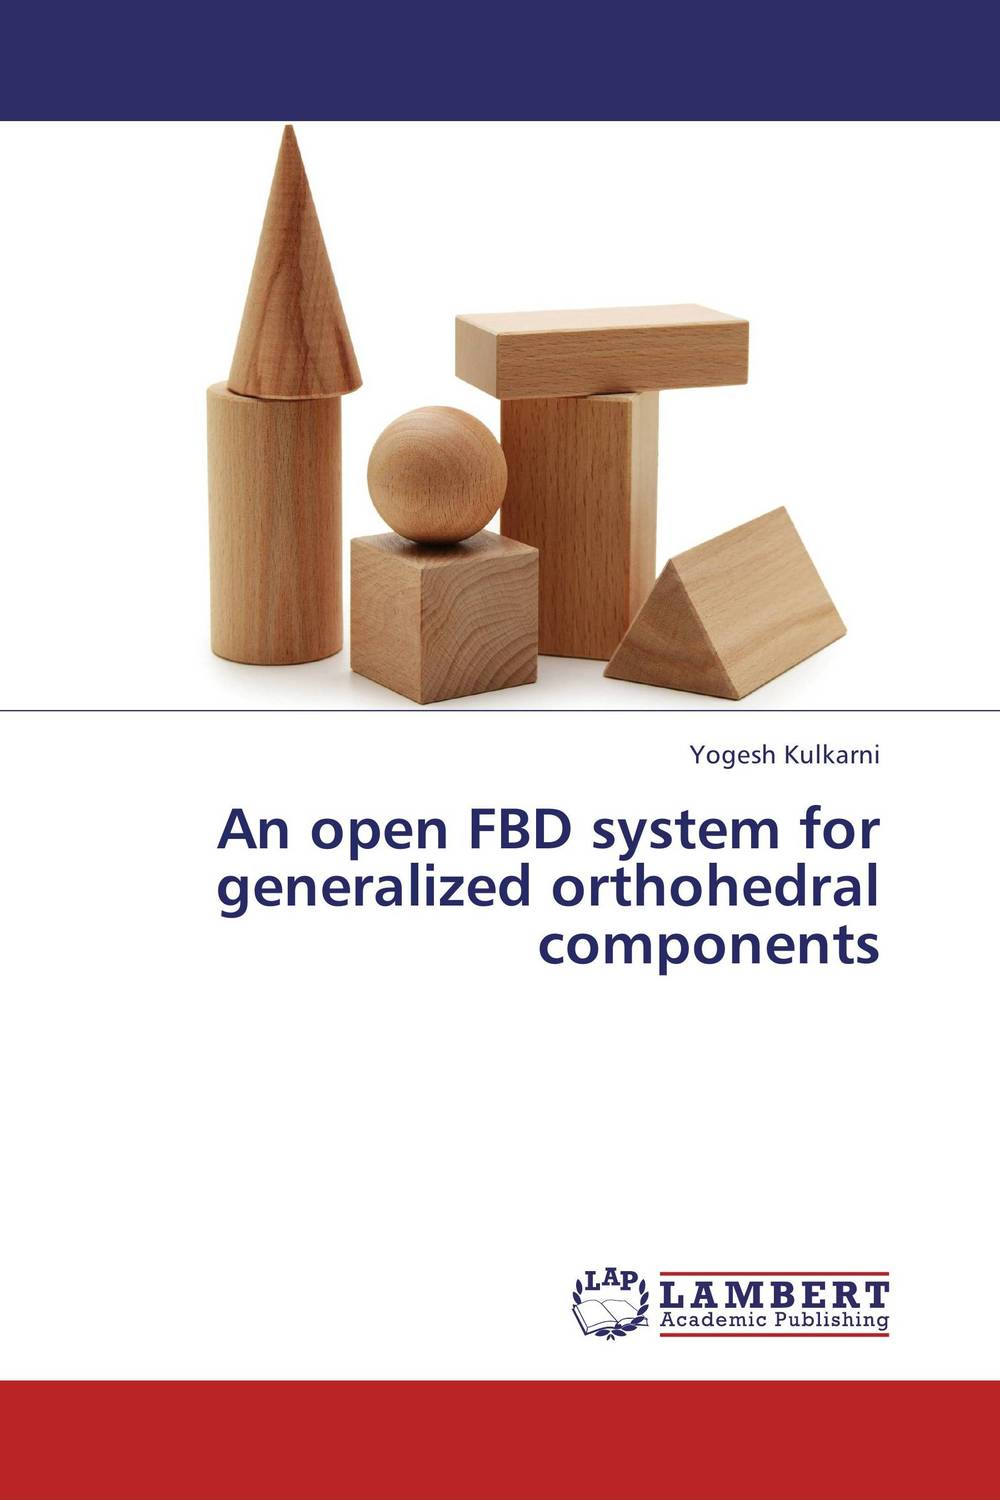 An open FBD system for generalized orthohedral components